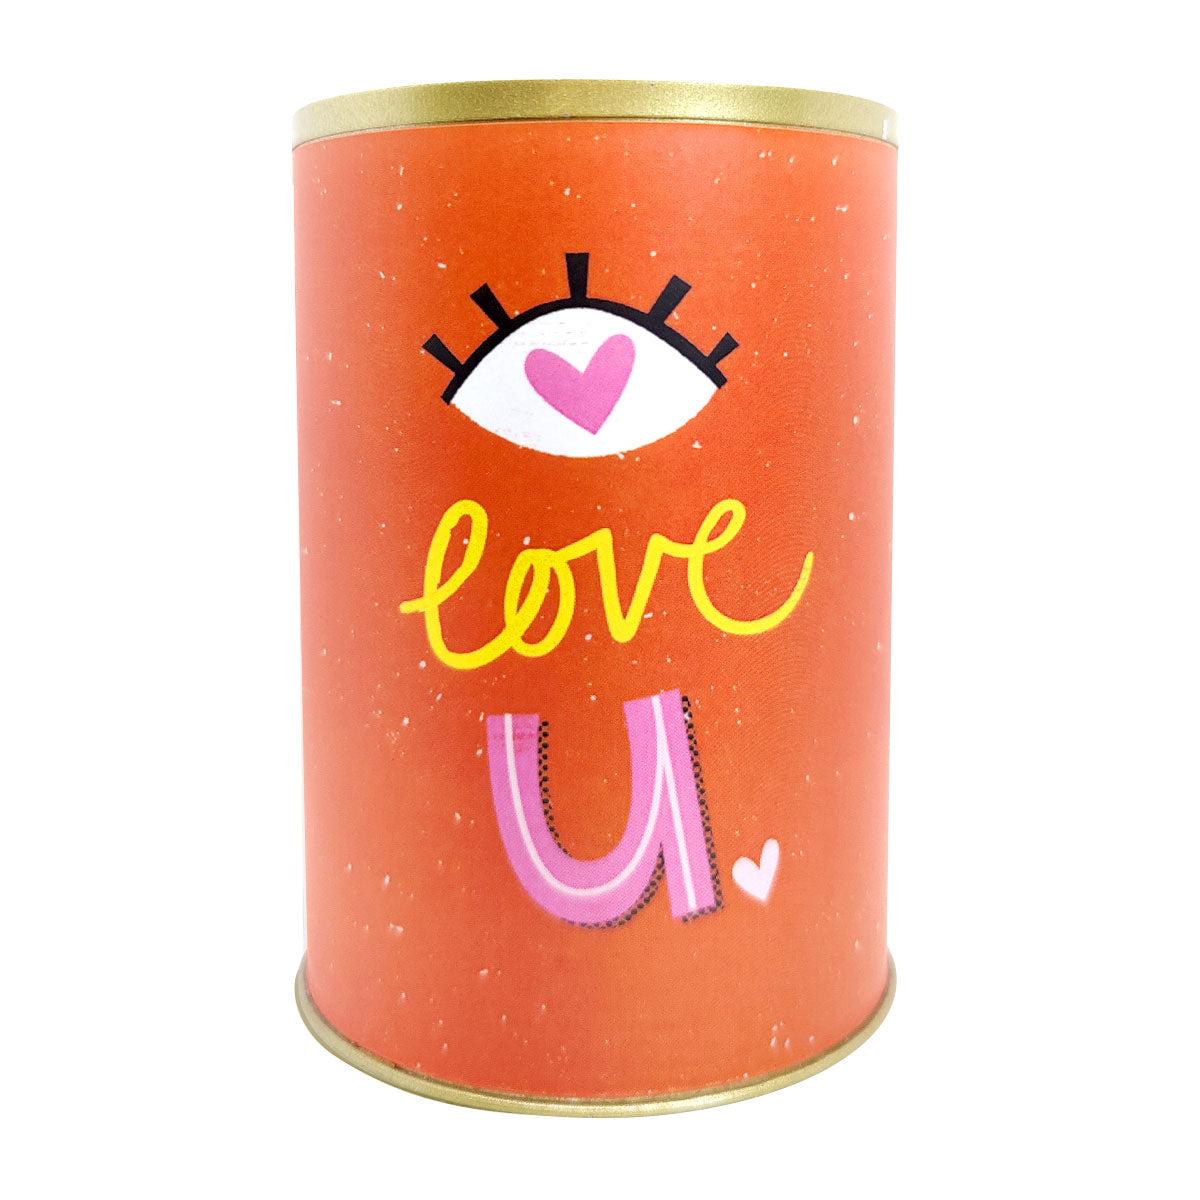 punny tin can for sale, tin pot for succulent and cactus, Valentine's day gift ideas, succulent gift ideas, funny pot for sale, Valentine gift for your lover